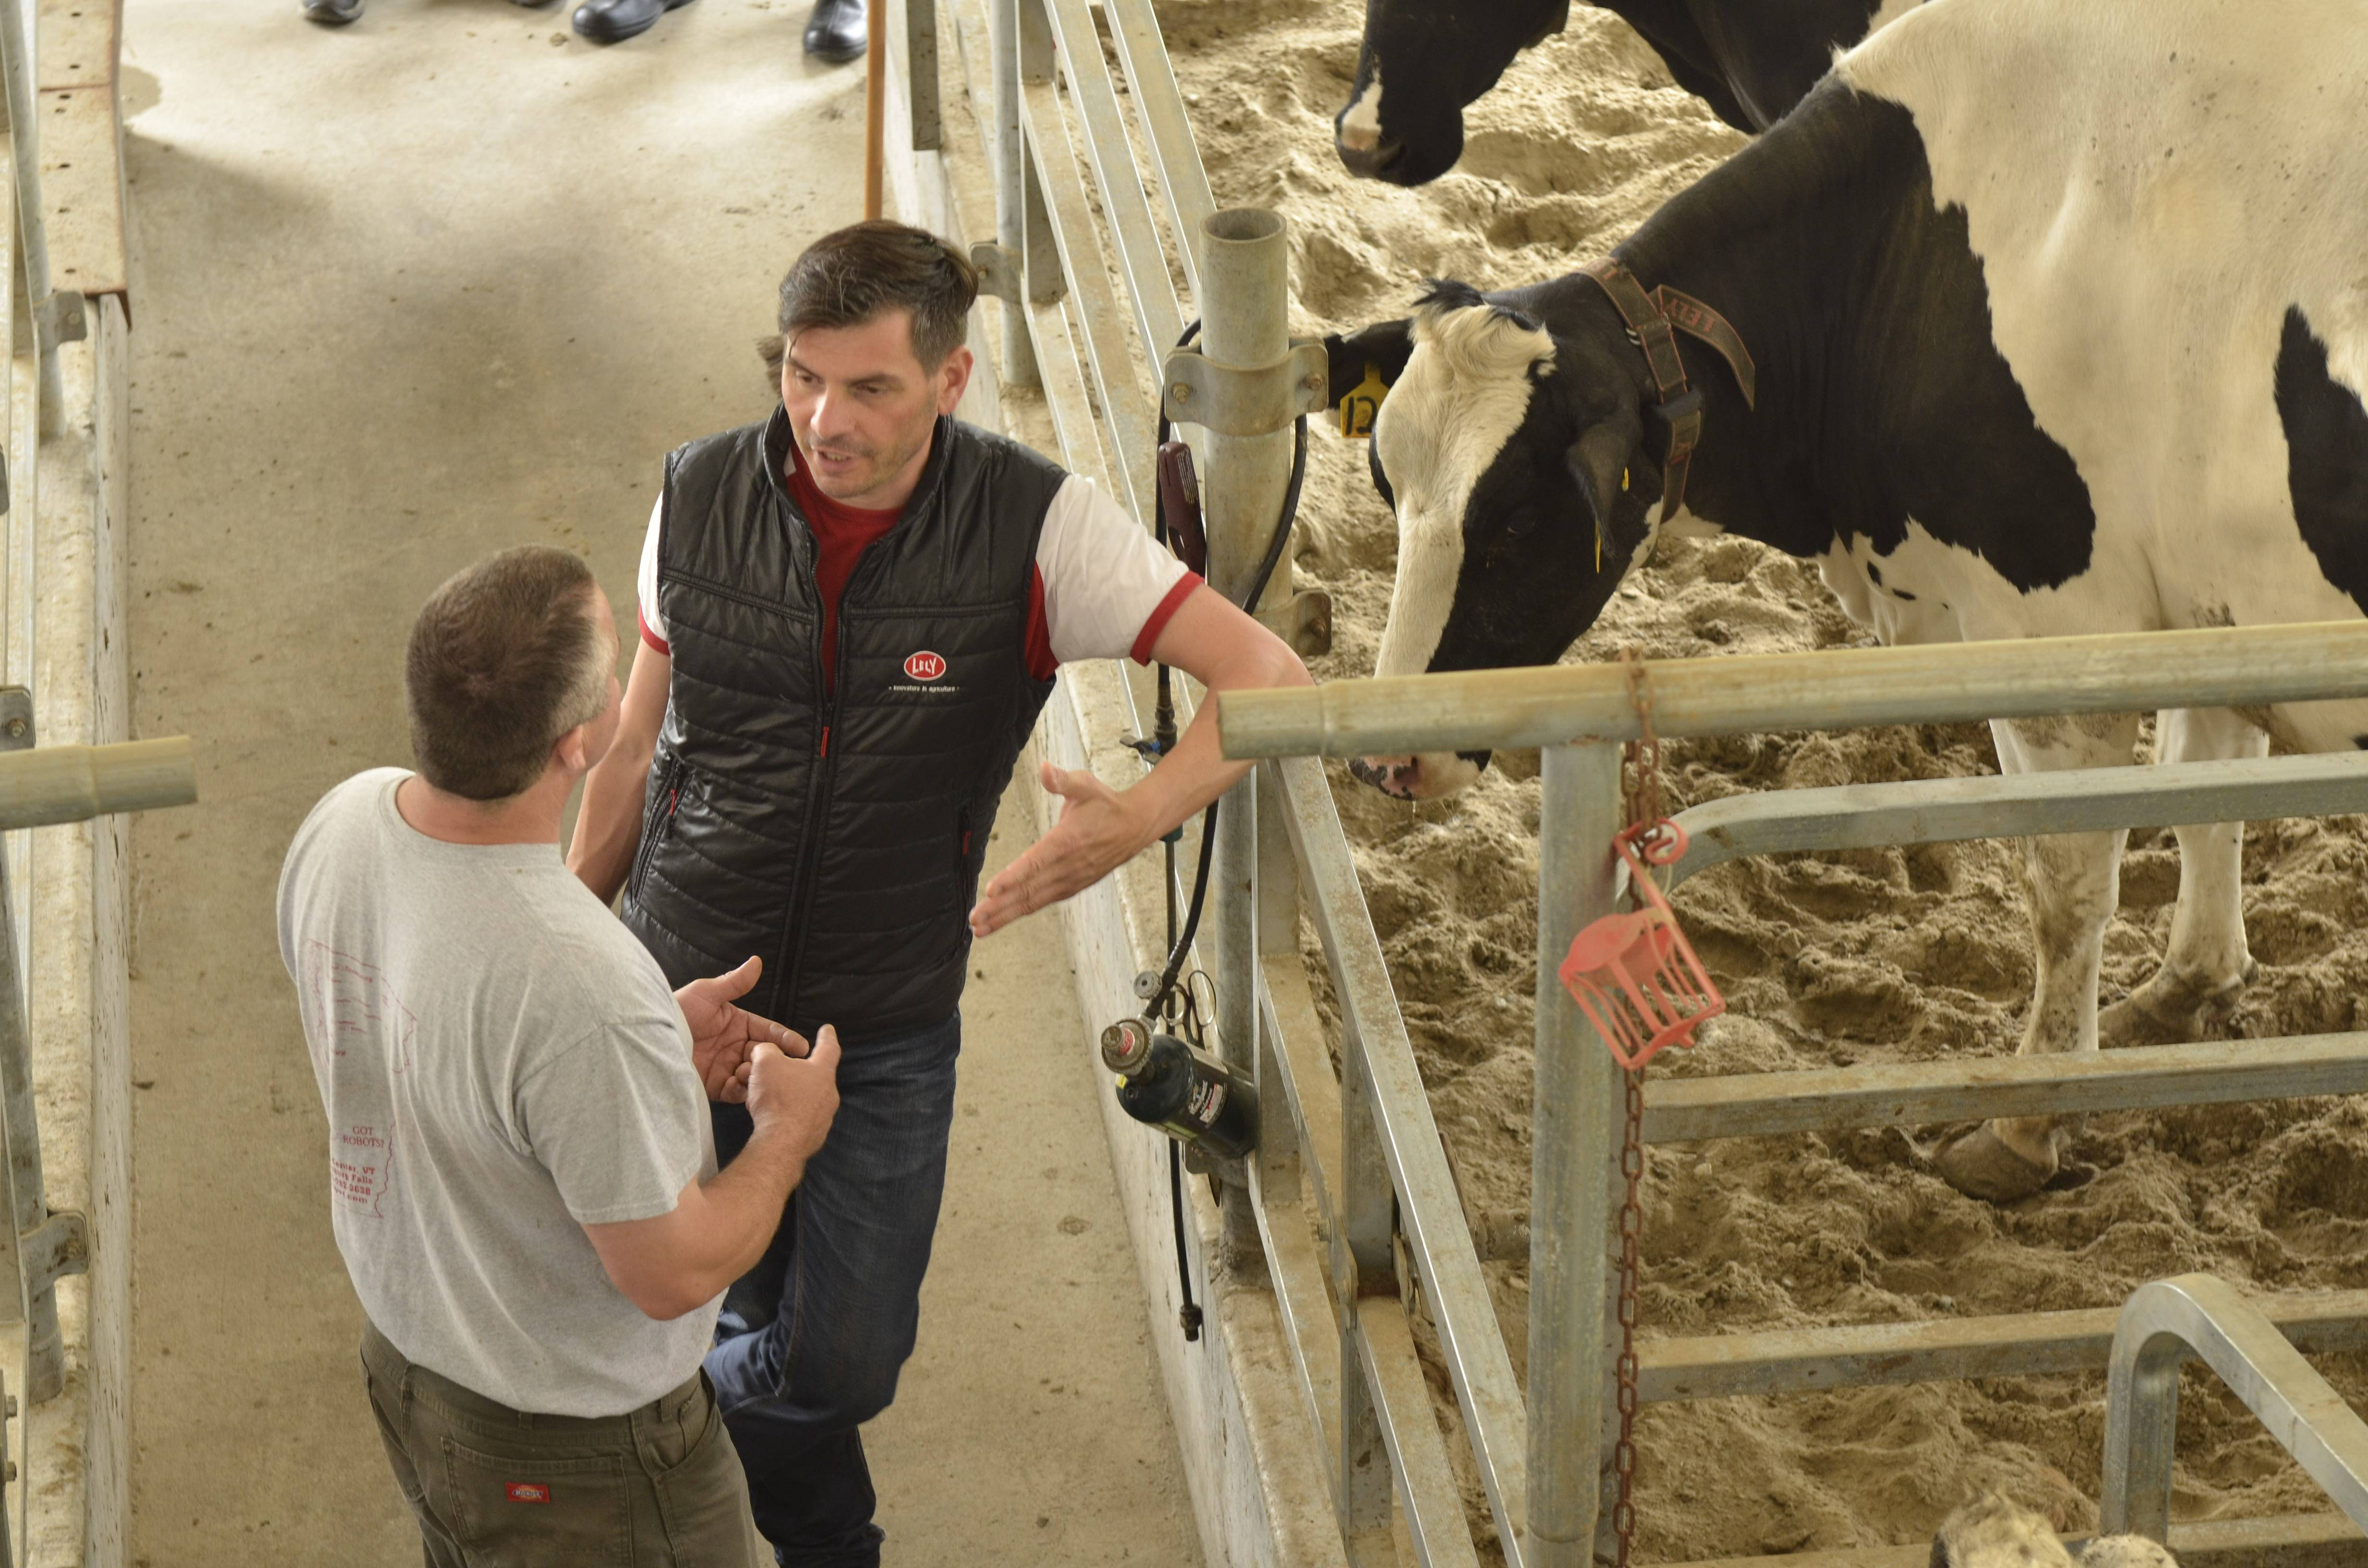 The outstanding on- and off-site support offered through Farm Management Support has confirmed, yet again, that choosing Lely was the best option for the Sweet Farm needs for milking robots and other barn products.